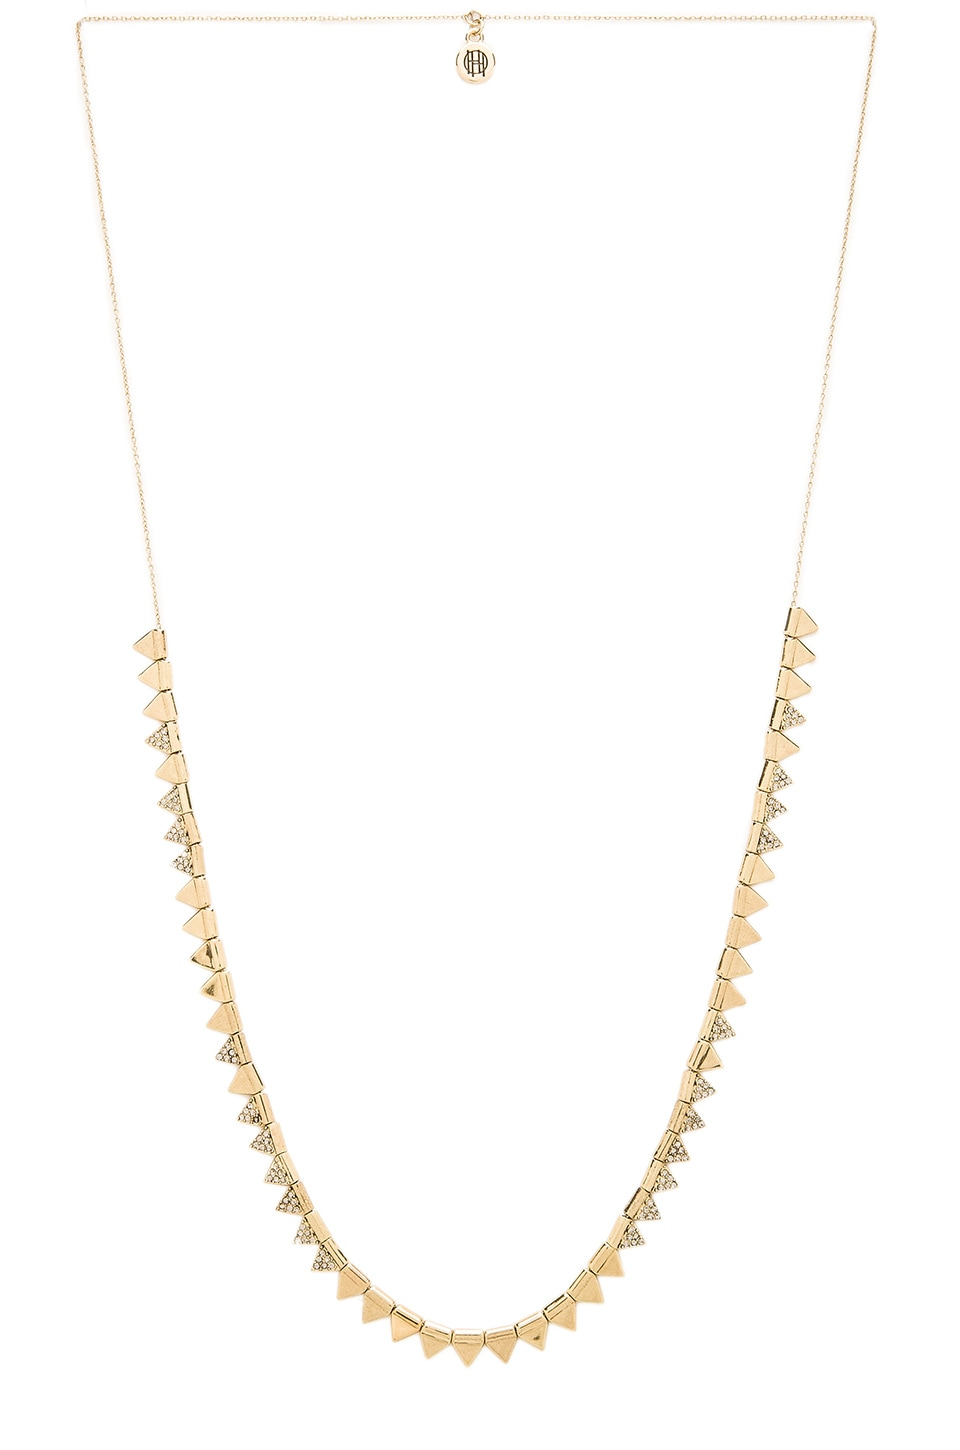 House of Harlow 1960 House of Harlow Frequency Necklace in Gold